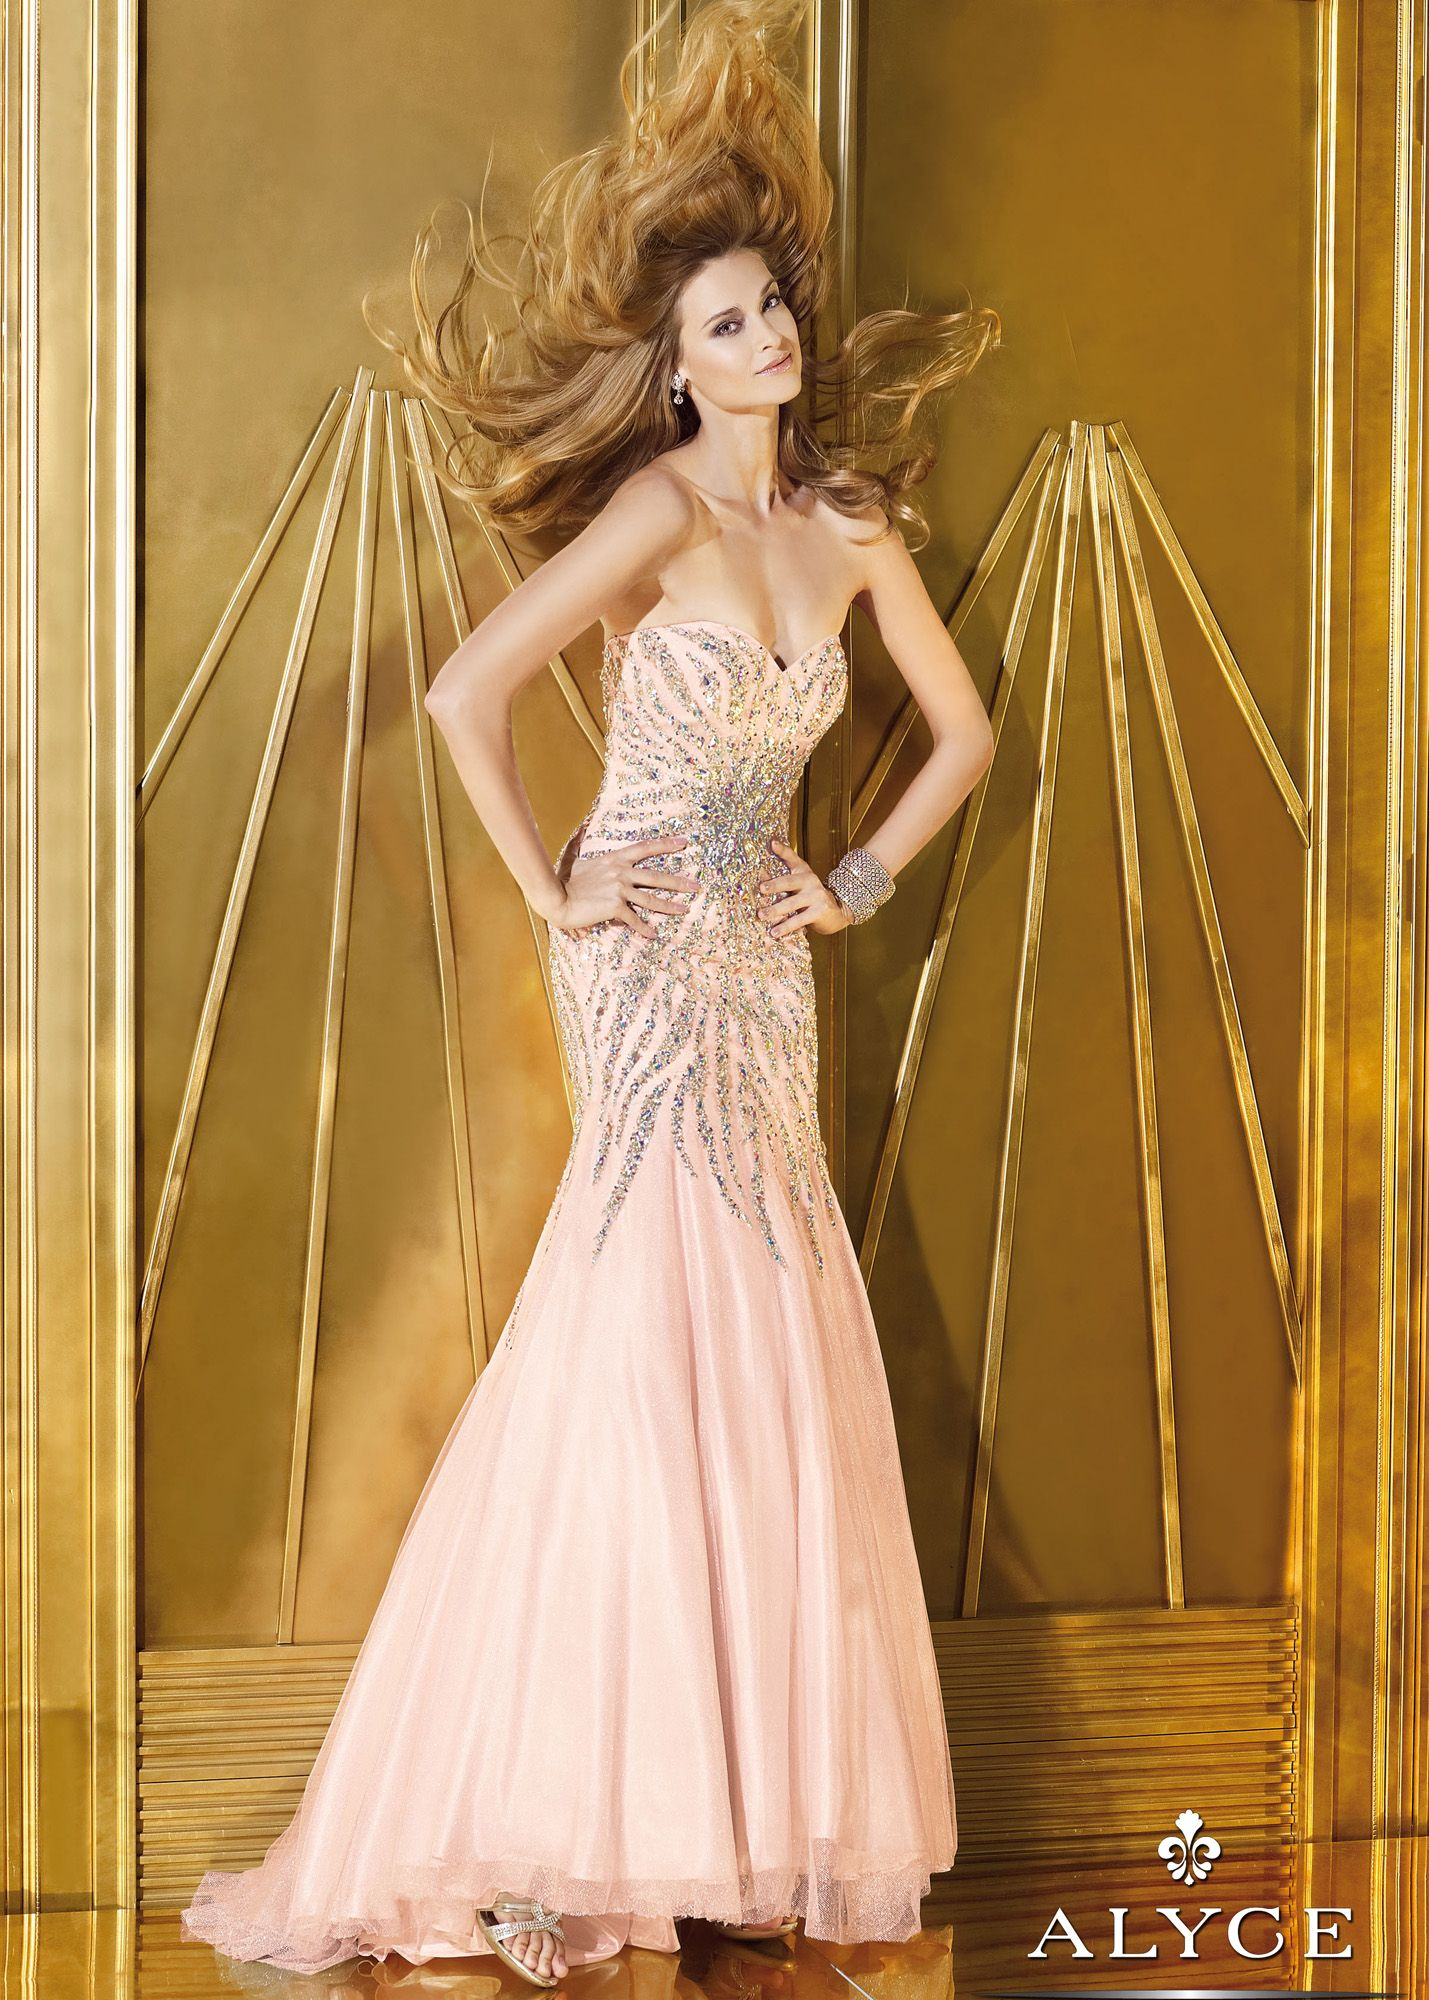 Next Online Party Dresses - Alyce paris 6166 dress for your next formal event at the castle we are an authorized retailer for all alyce paris dresses and every 6166 is brand new with